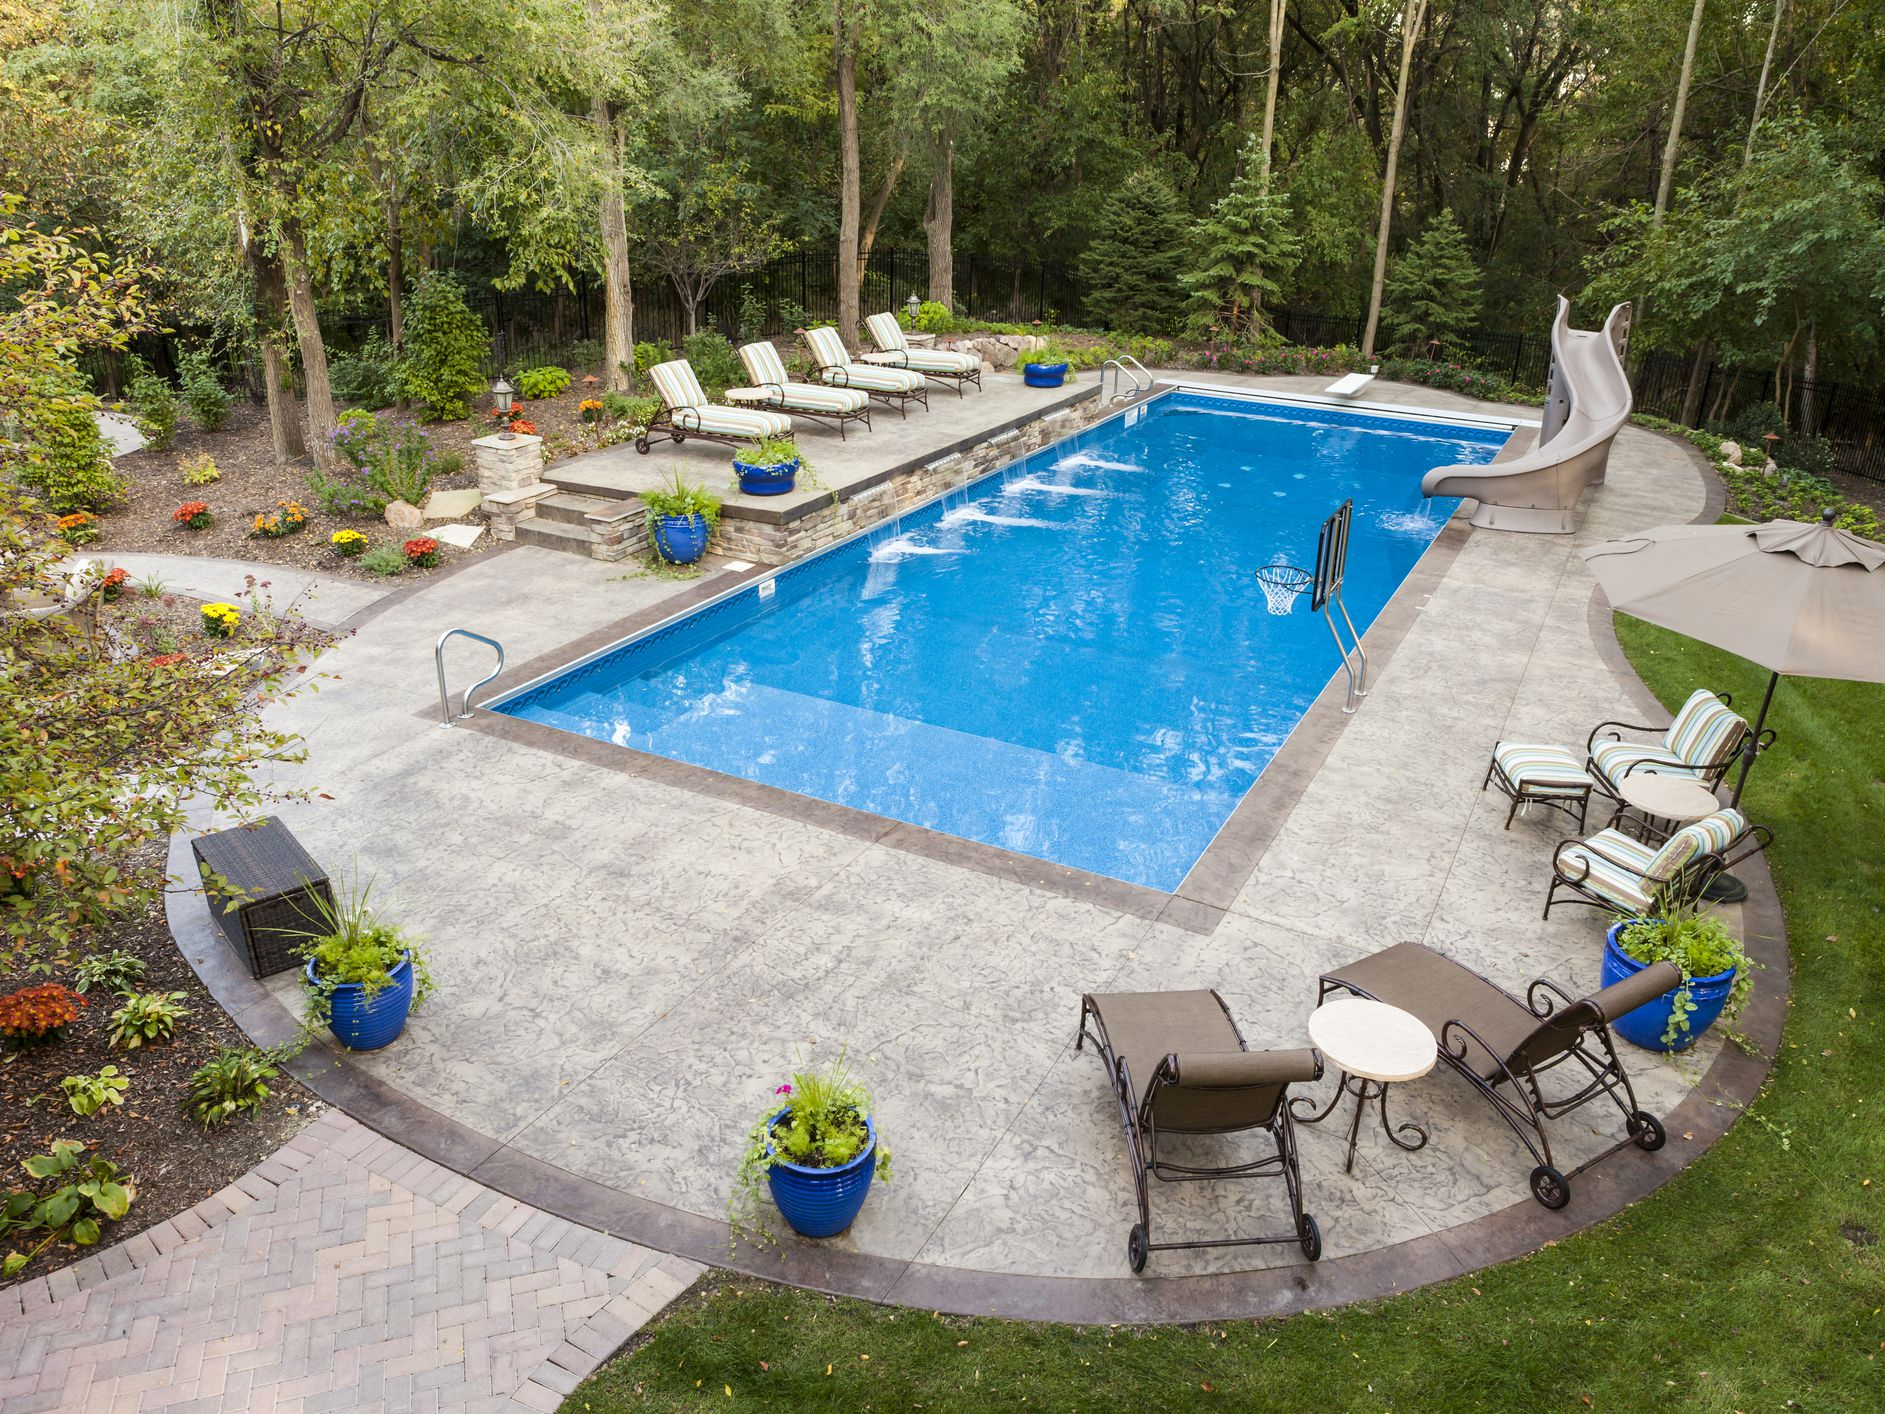 Reasons For Pool Coping And Edging